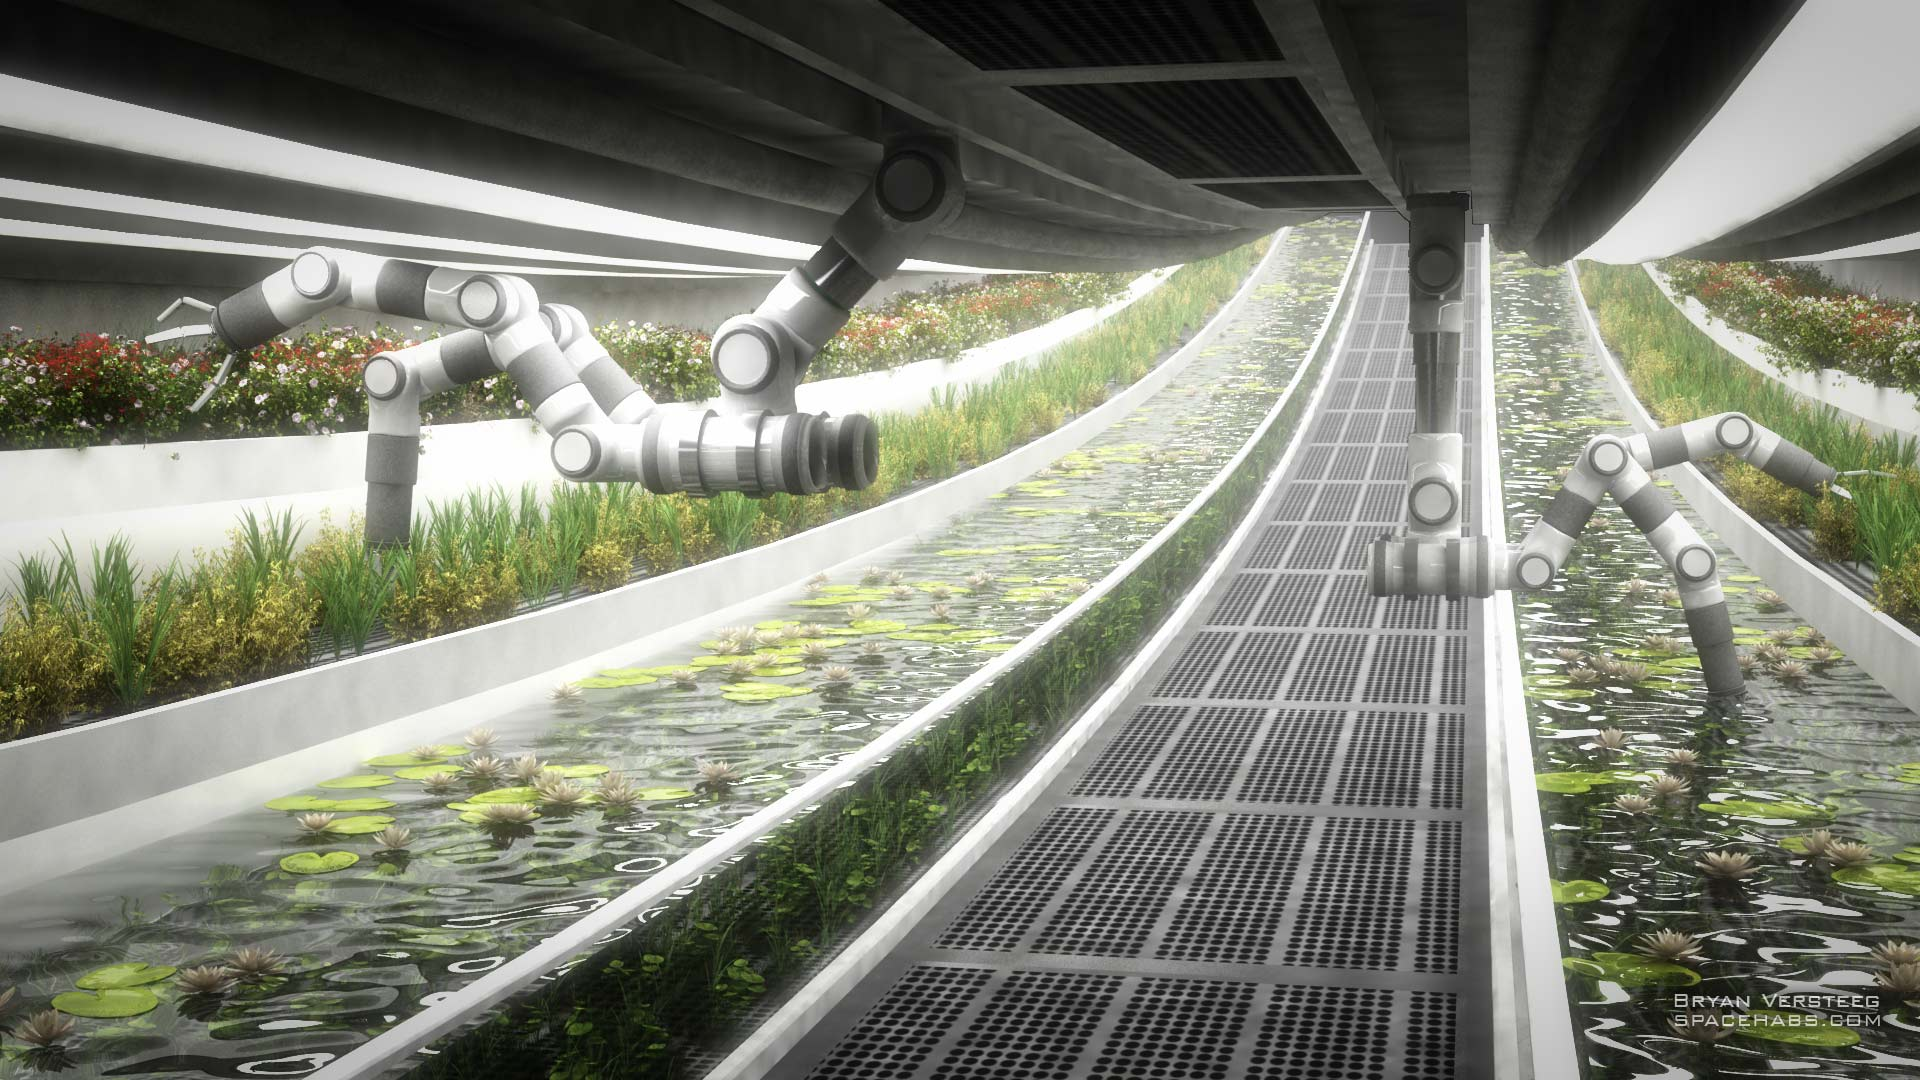 copyright Bryan Versteeg / spacehabs.com, Automated robotic farming.